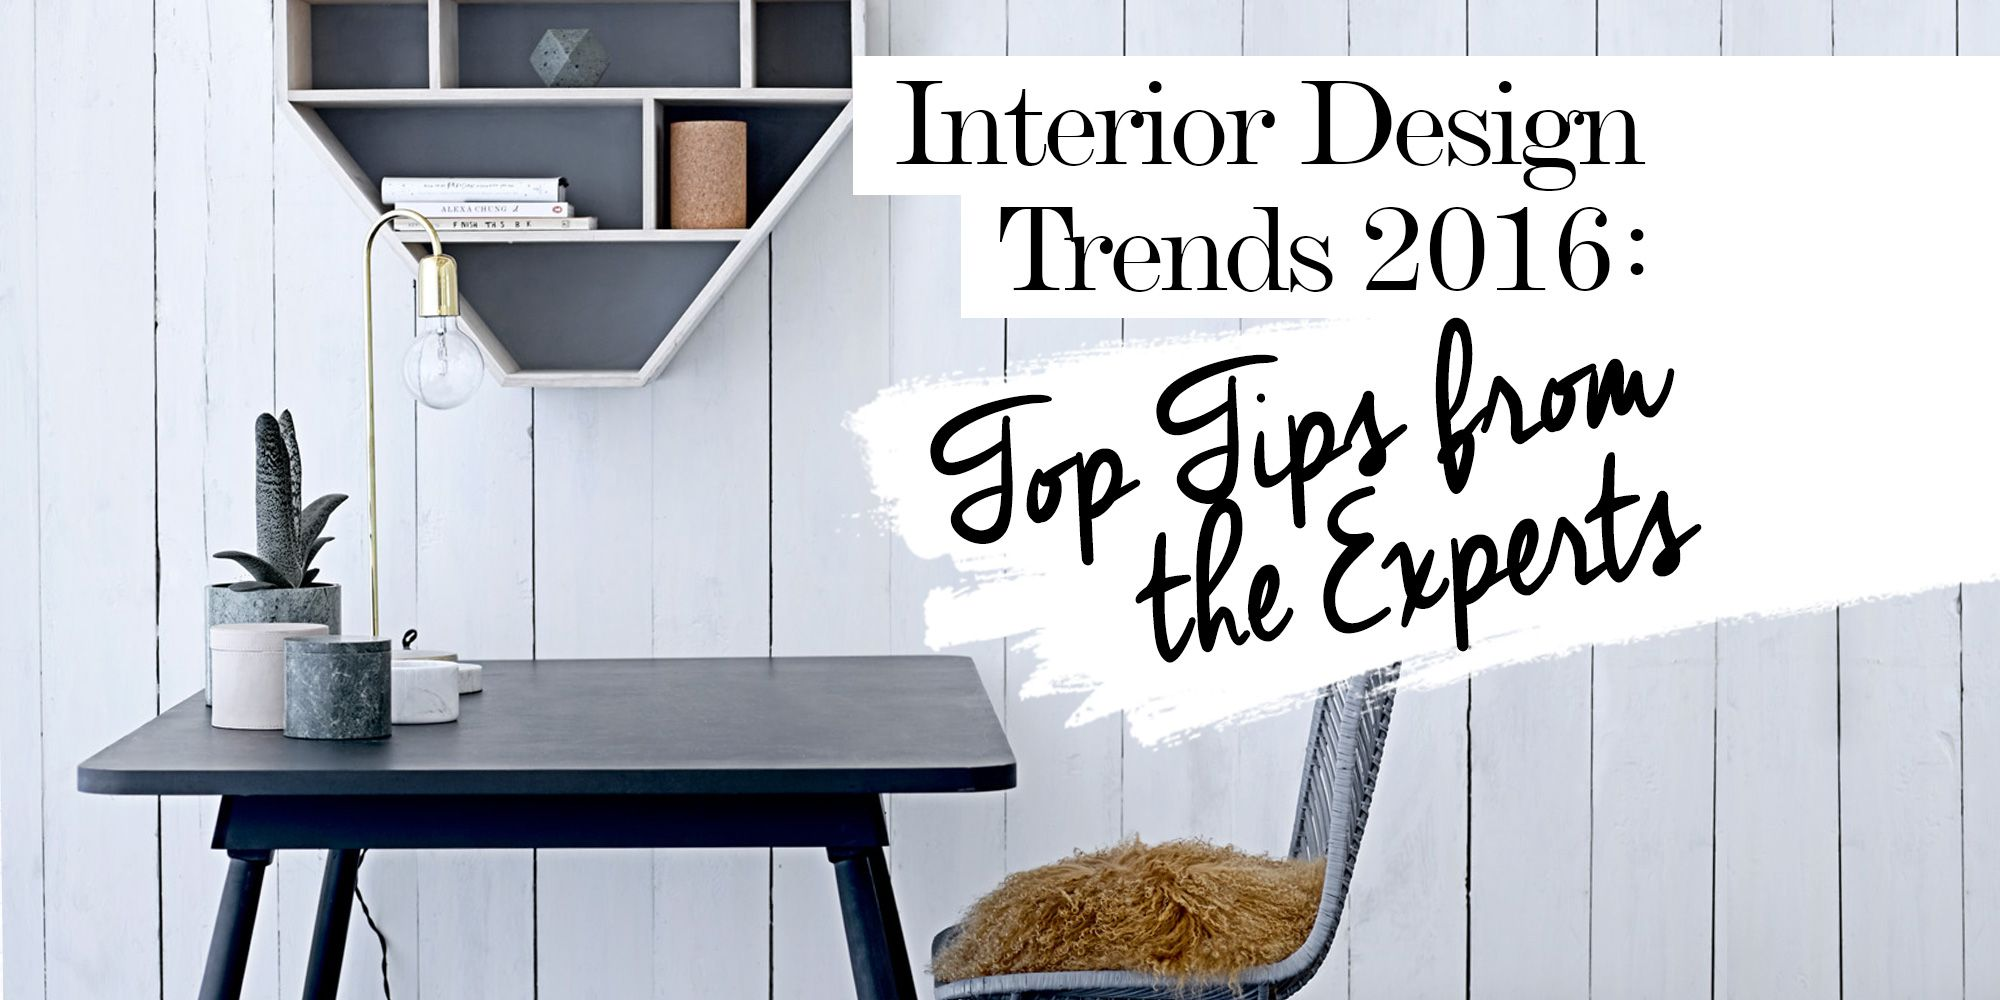 2016 Interior Design Trends Top Tips From the Experts Interiors